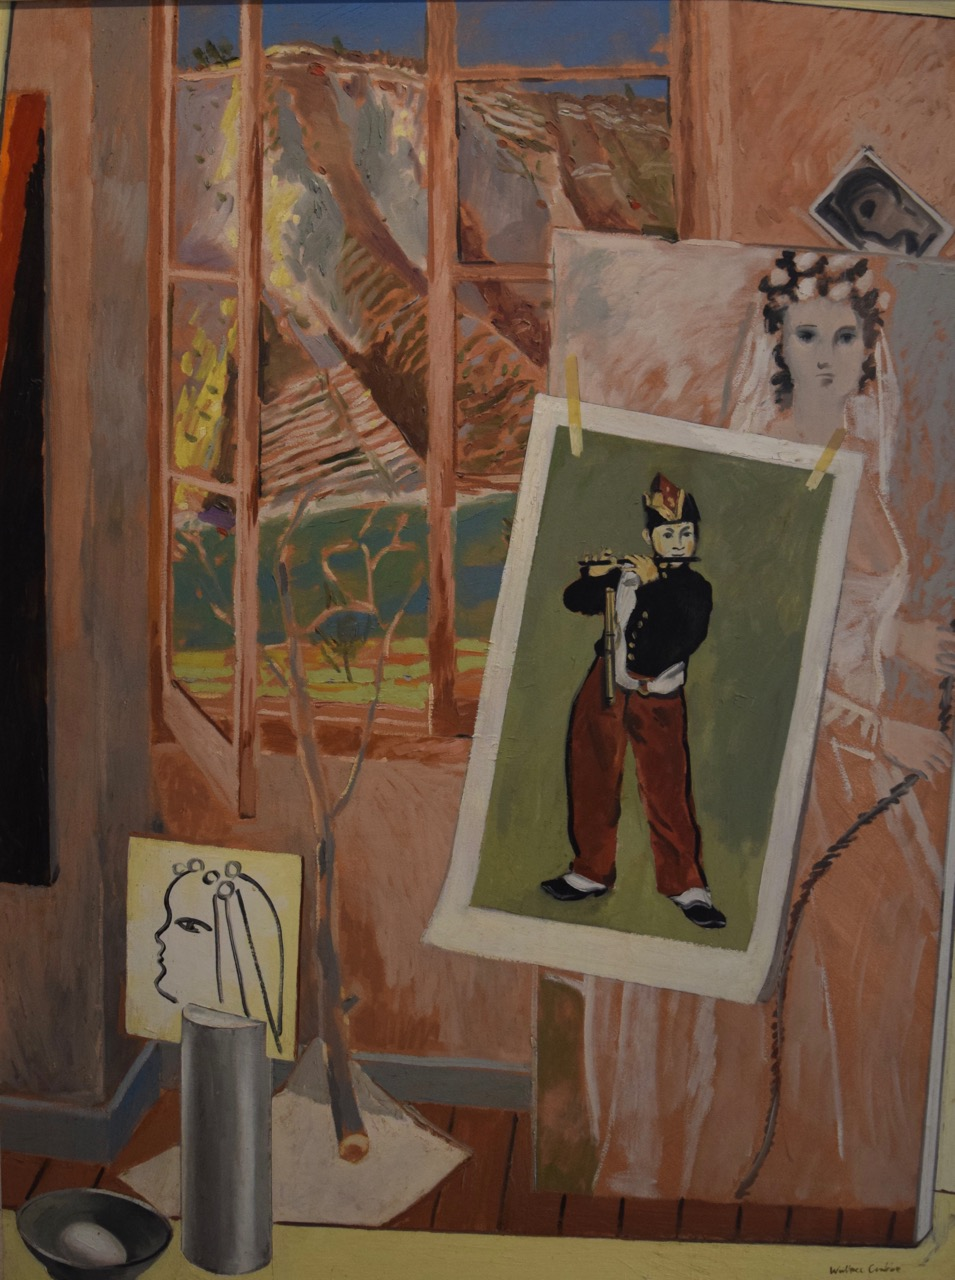 Gippsland studio with Manet fifer , oil paint on canvas, 1974